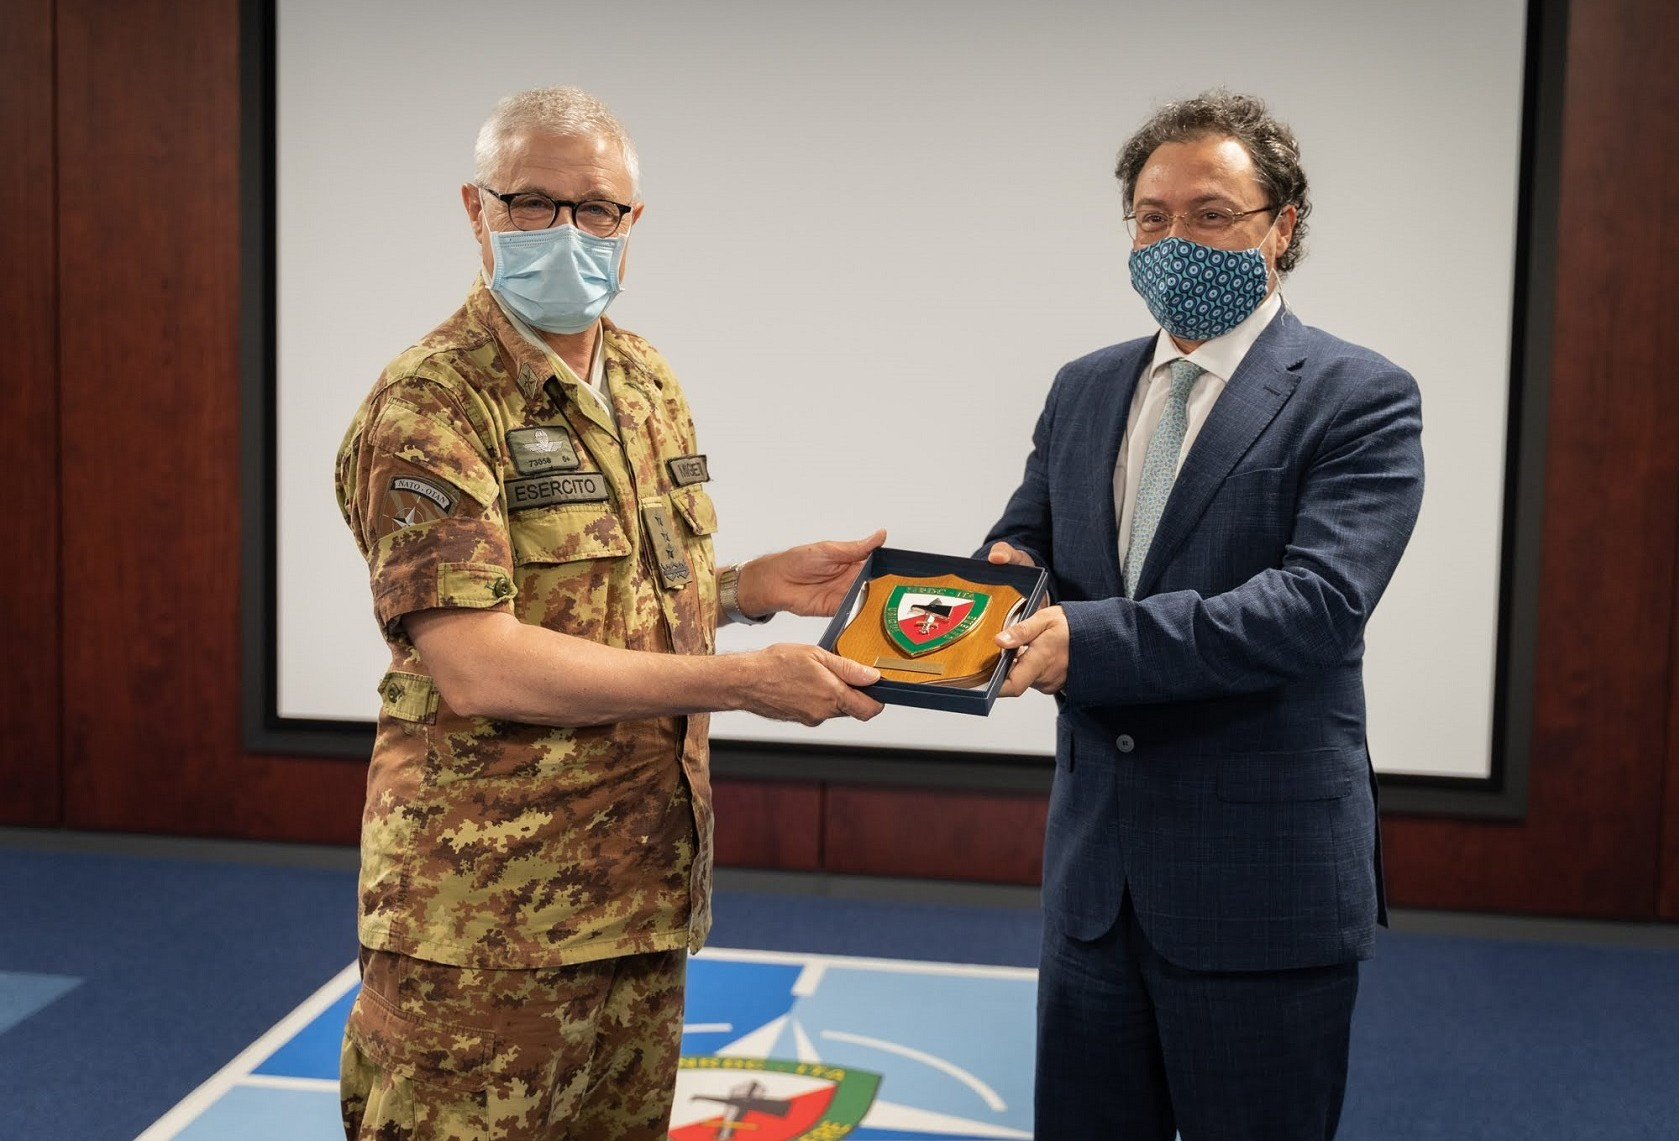 General Miglietta meets the Consul General of Turkey